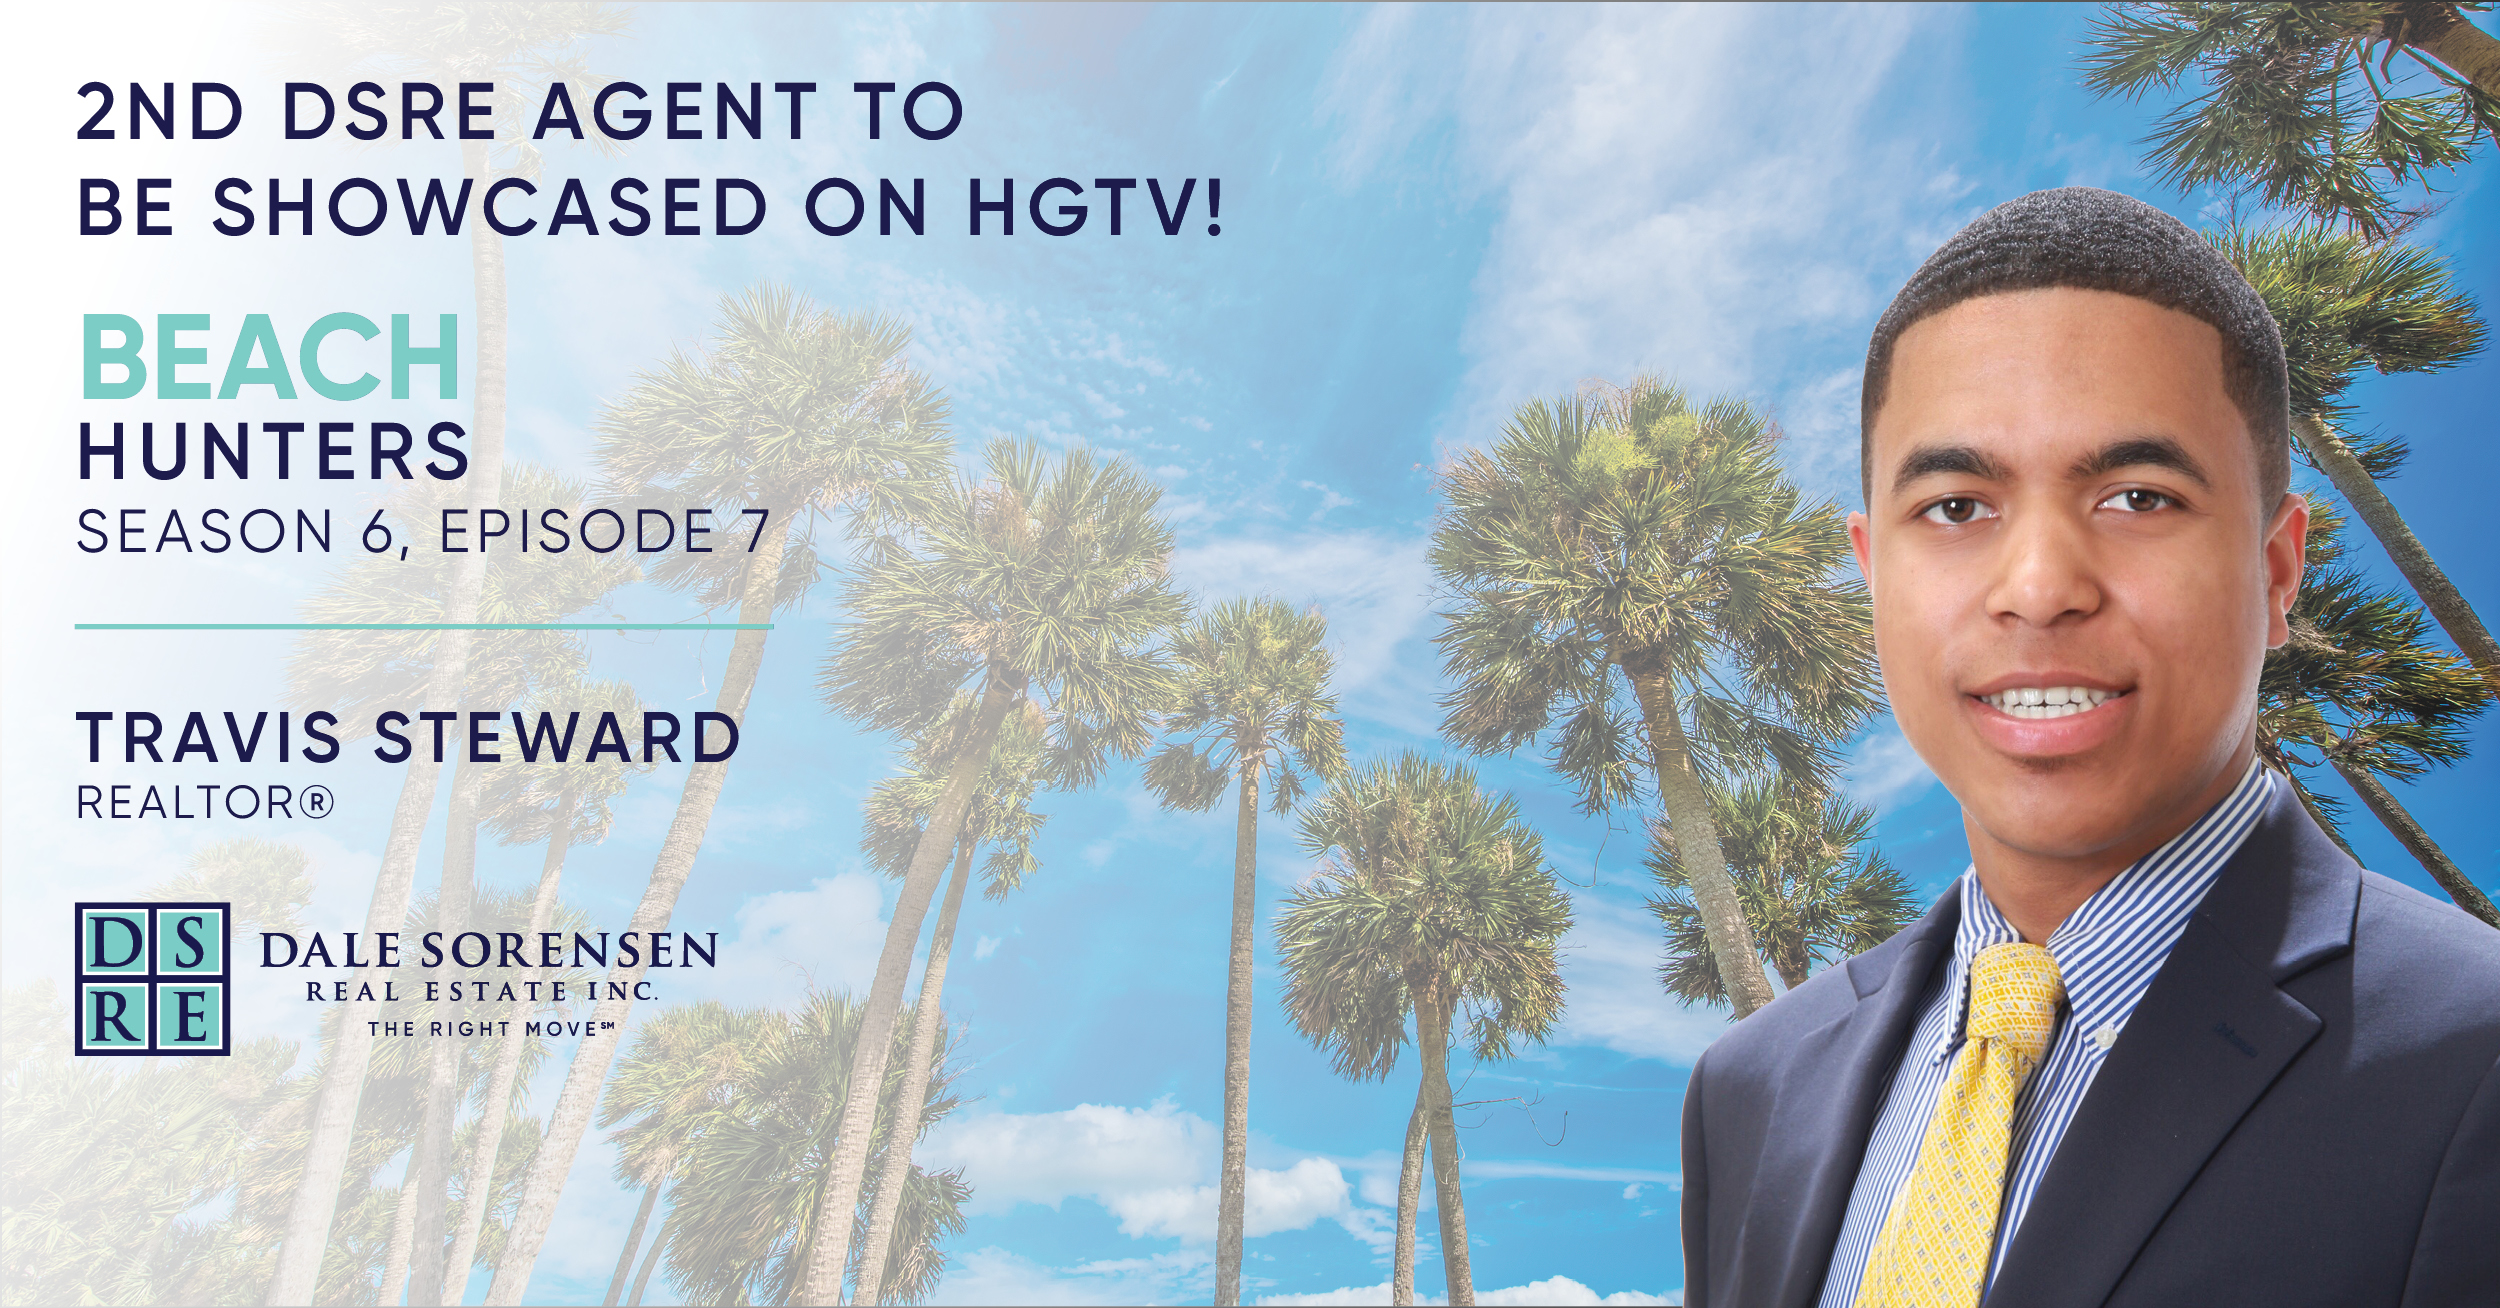 2nd DSRE Agent to be showcased on HGTV! Beach Hunters, Season 6, Episode 7. Travis Steward Realtor. DSRE | Dale Sorensen Real Estate Inc. THE RIGHT MOVE